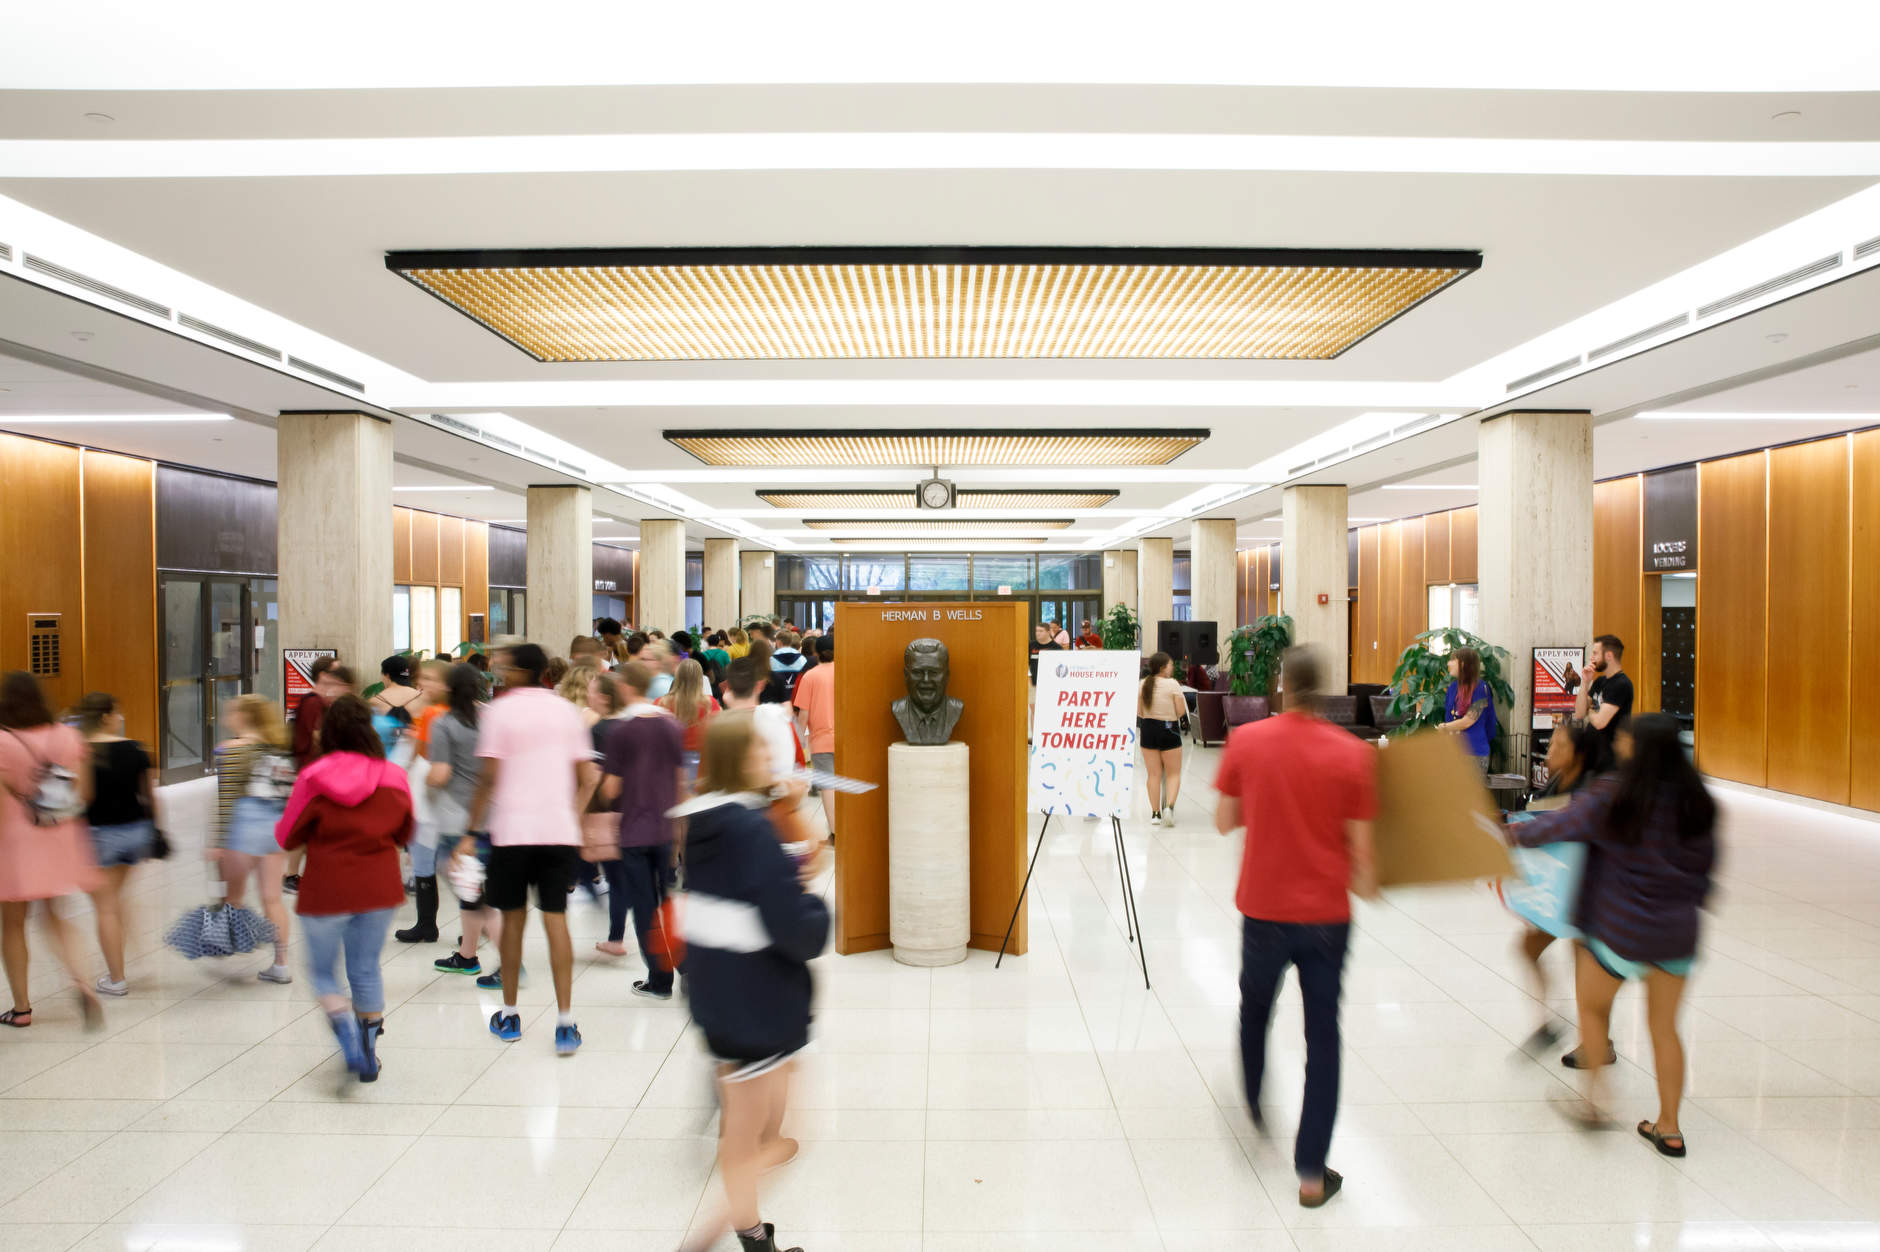 Students make their way into the Wells Library for the Herman B House Party at IU Bloomington on Thursday, Aug. 22, 2019. (James Brosher/Indiana University)